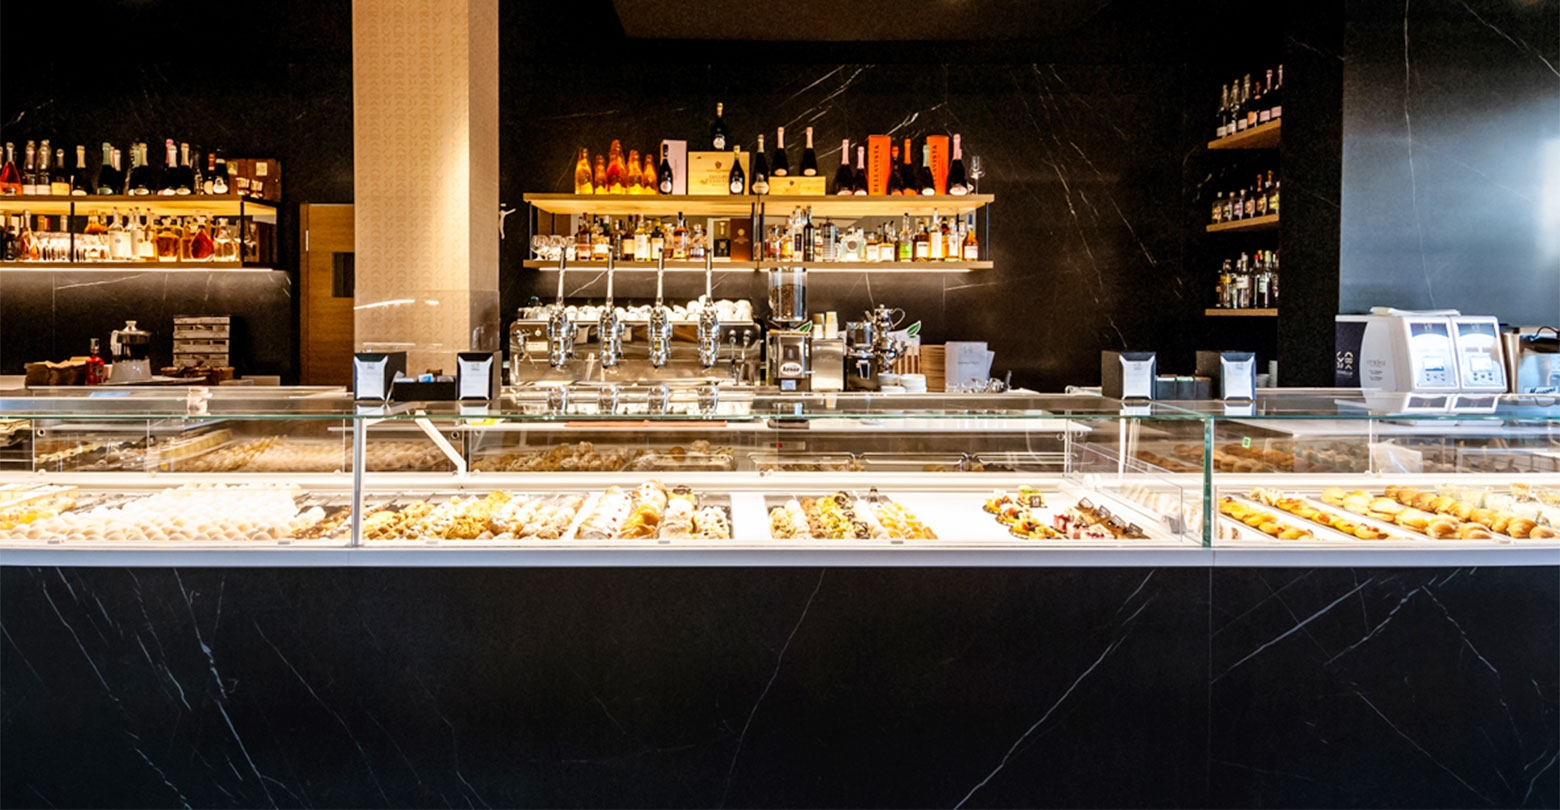 Vibia - The Edit - North - A Sleek Italian Patisserie